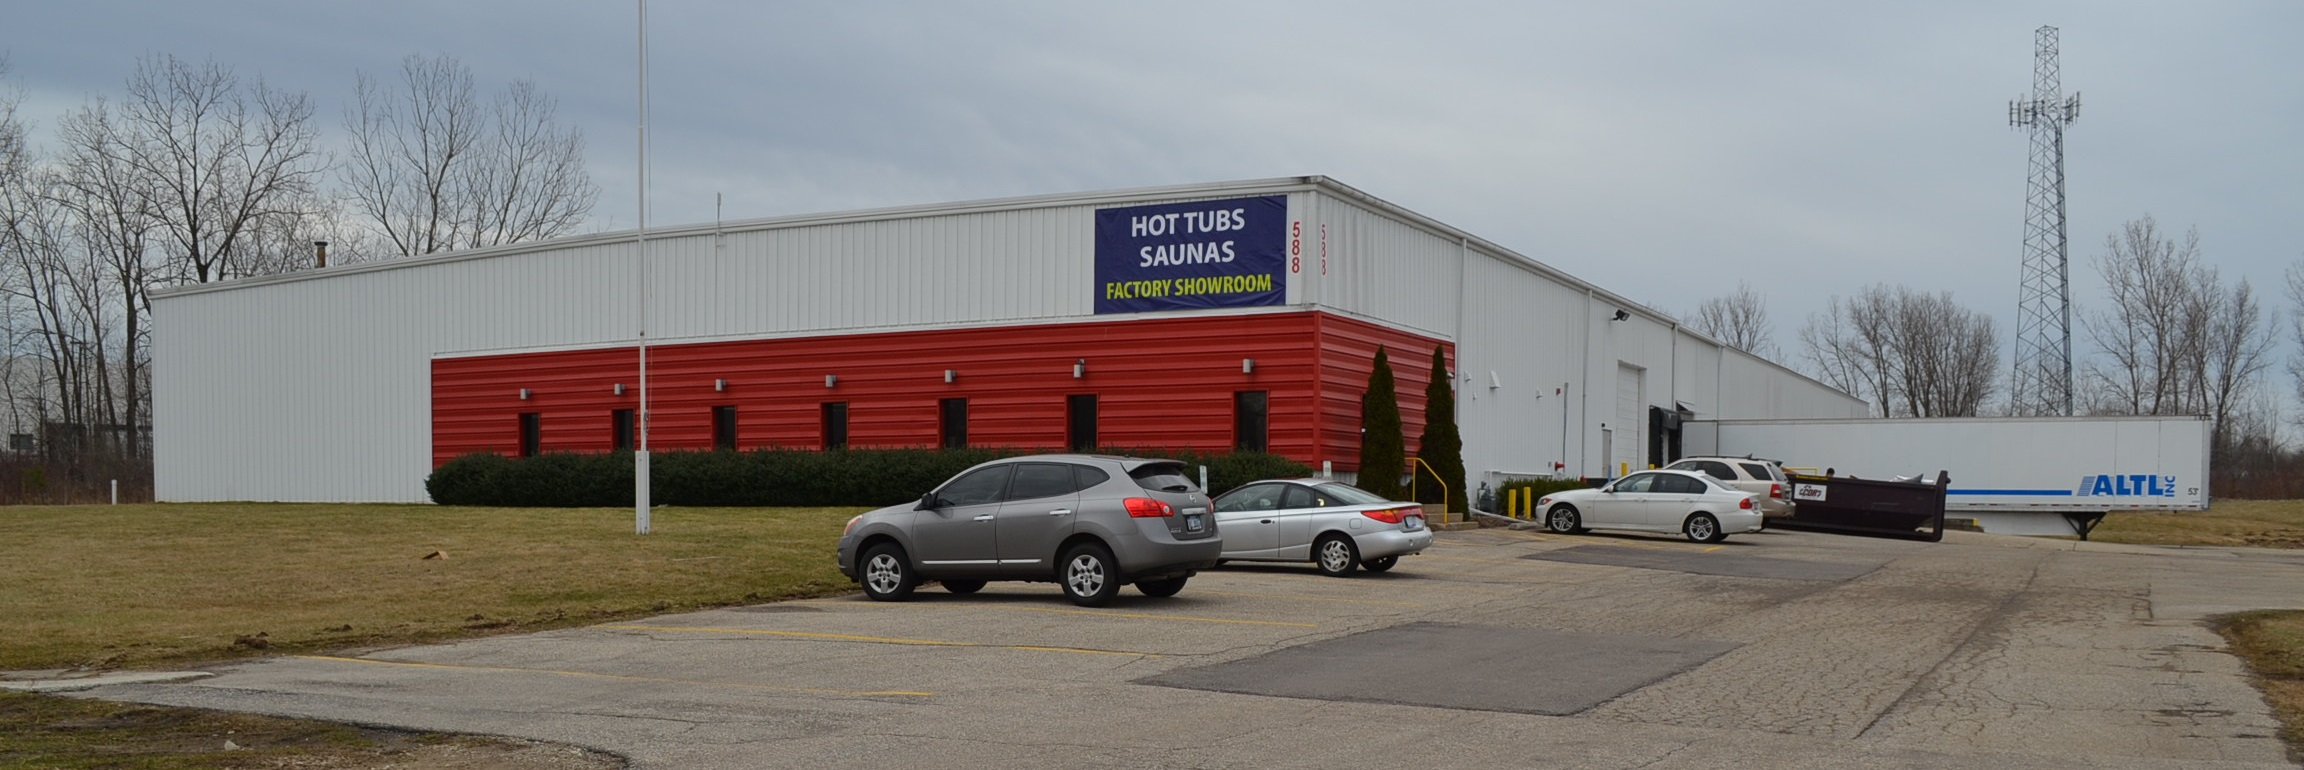 Passion Spas USA Factory Showroom exterior